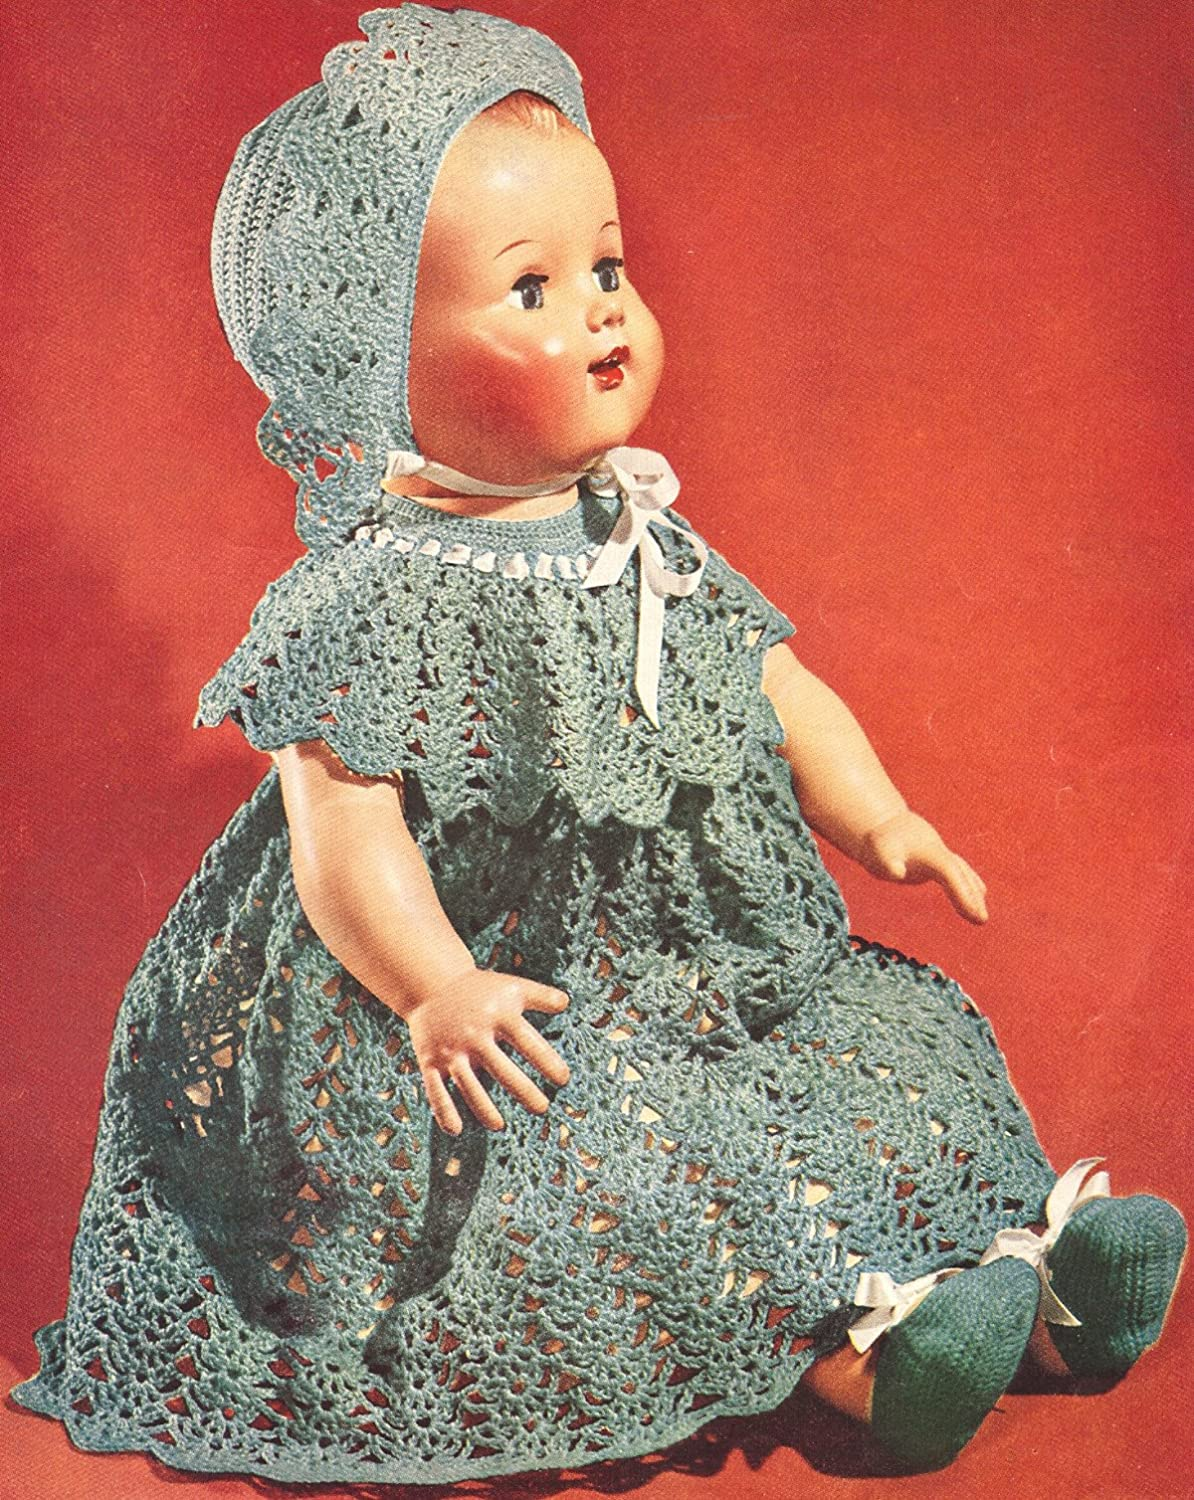 Vintage Crochet PATTERN to make - Baby Doll Dress Hat Shoes 22 16-in. NOT a  finished item 290ccdc9d7c